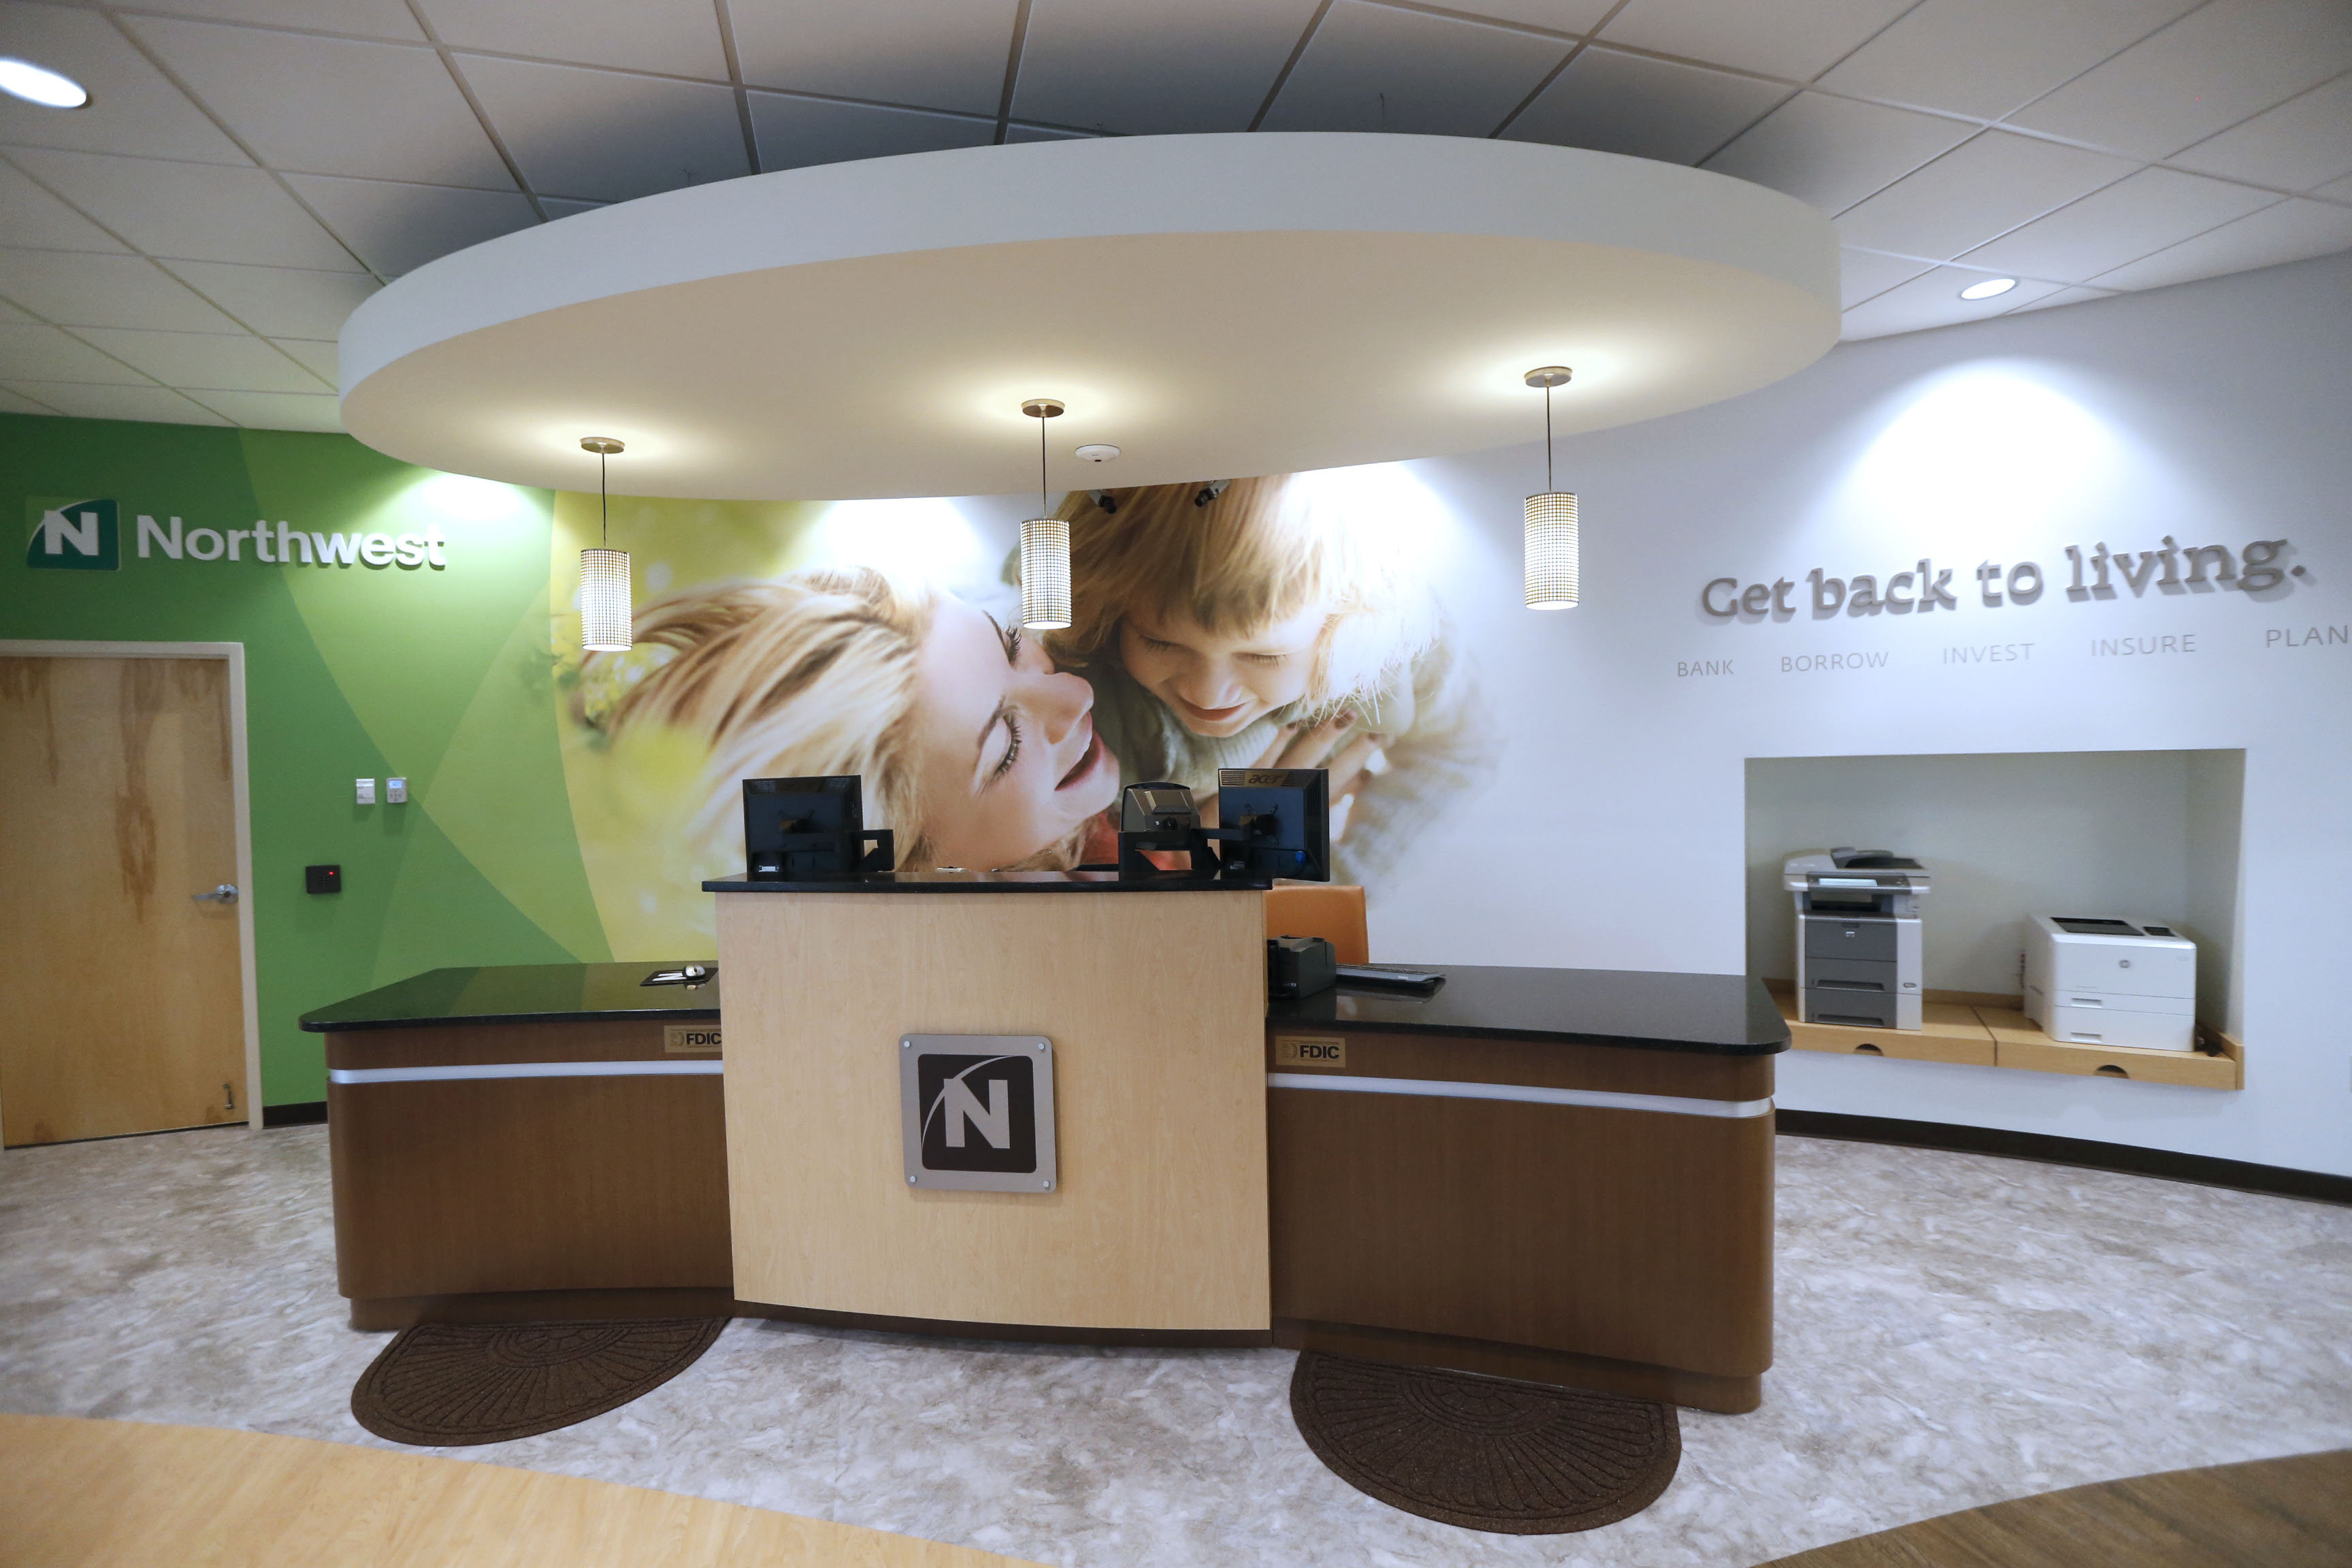 A Northwest Bank in Orchard Park features a new open-concept floor plan.  (Robert Kirkham/Buffalo News file photo)